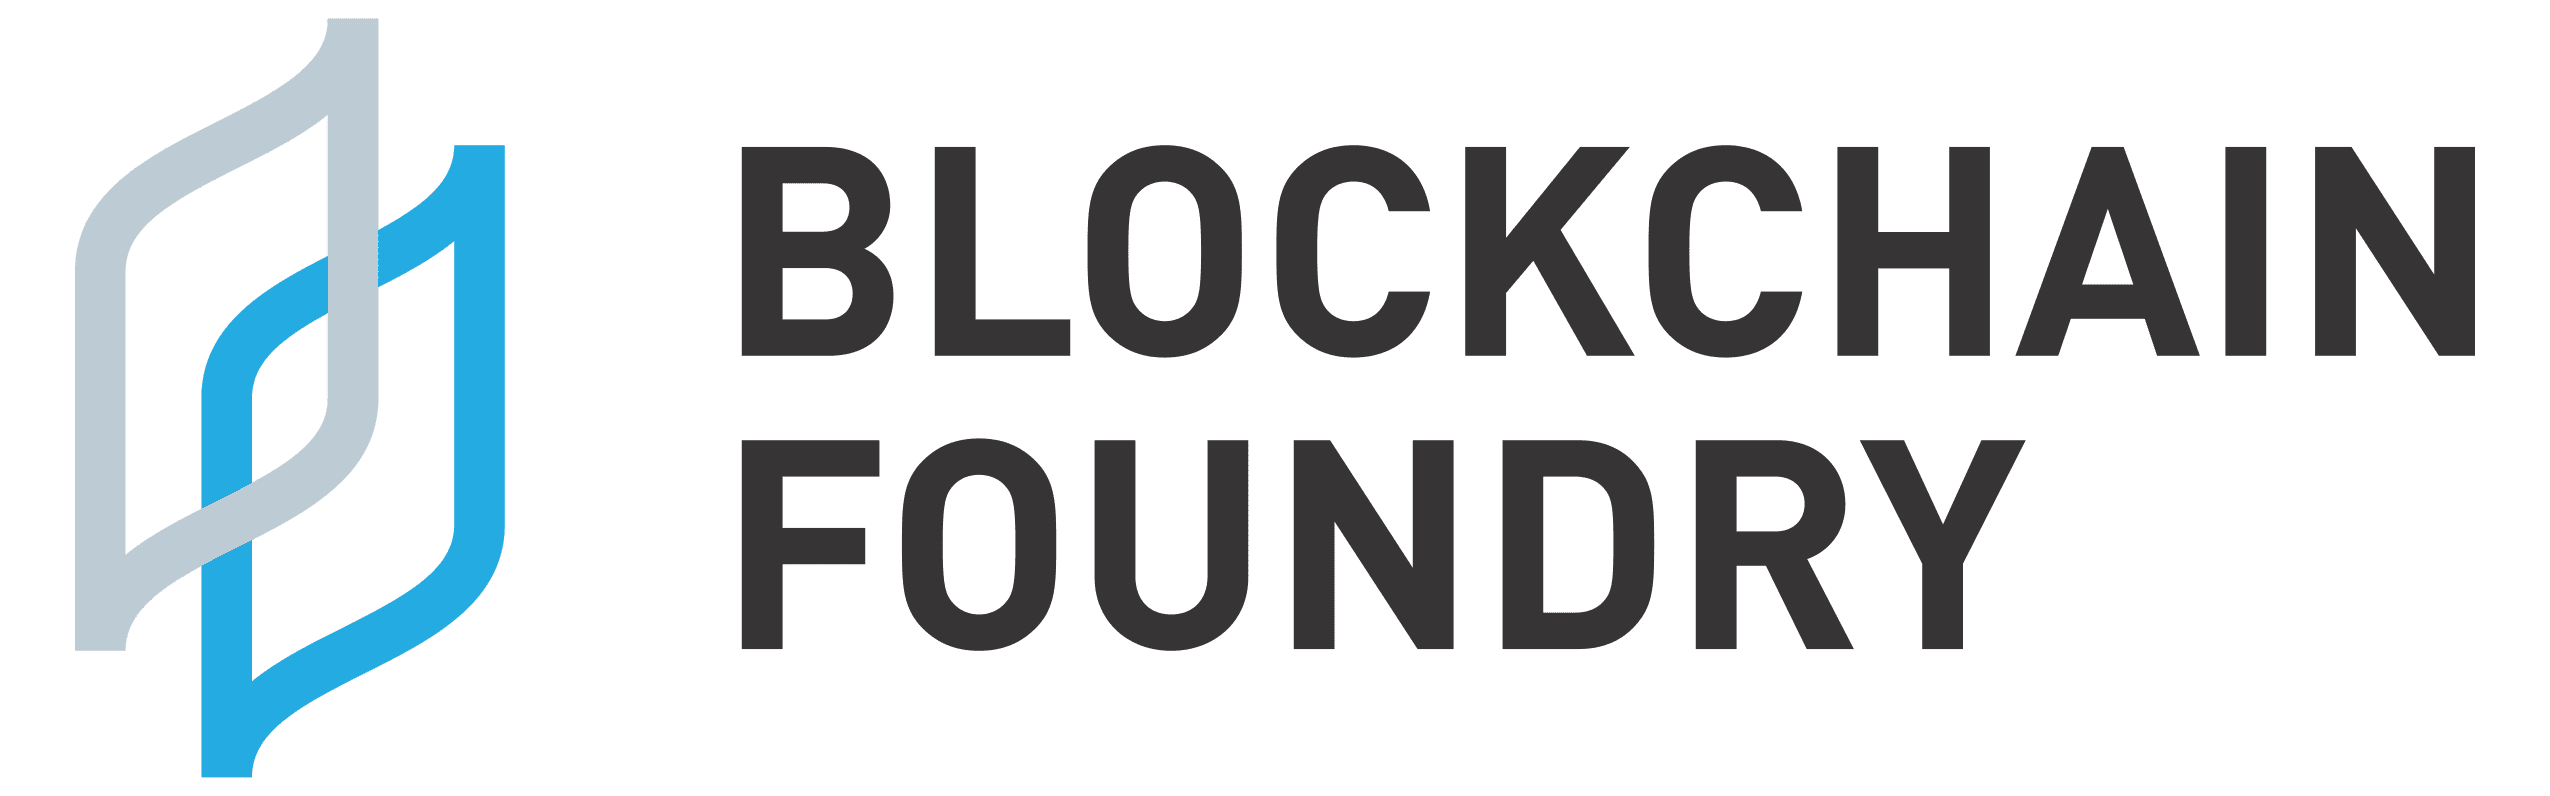 Blockchain Foundry Inc.